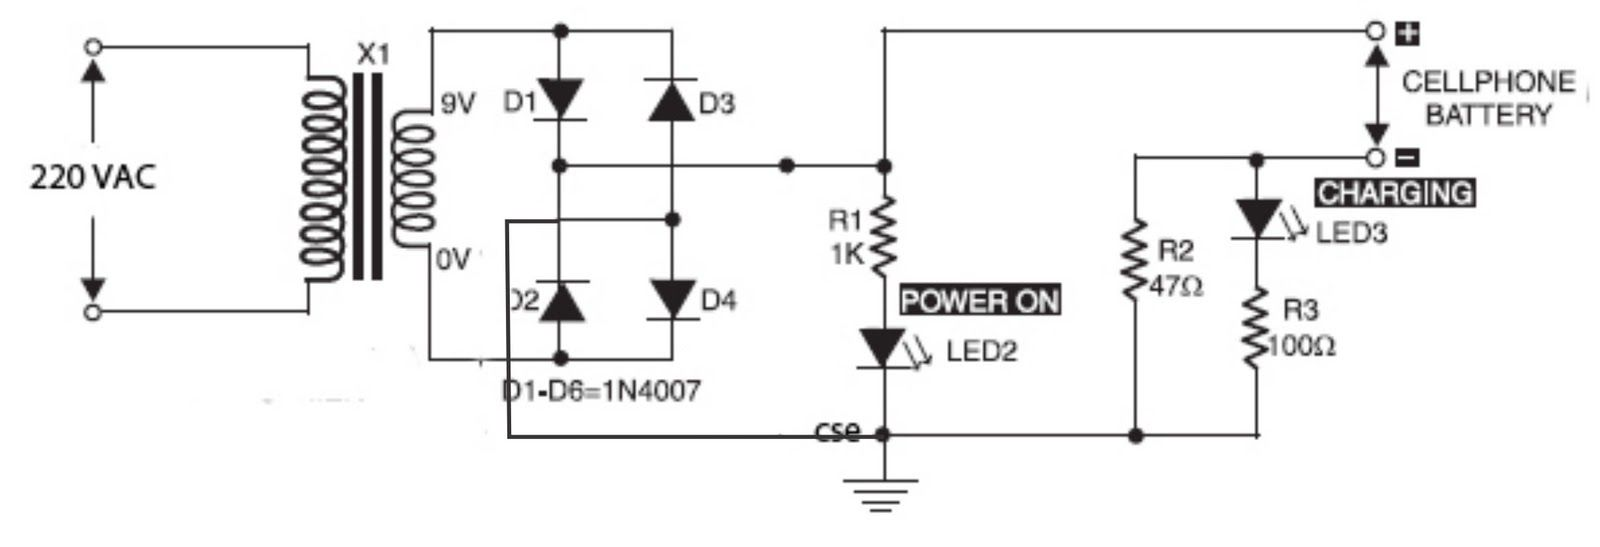 hight resolution of simple rapid battery charger circuit diagram electronic circuit mobile battery charger circuit diagram electronic circuit diagrams